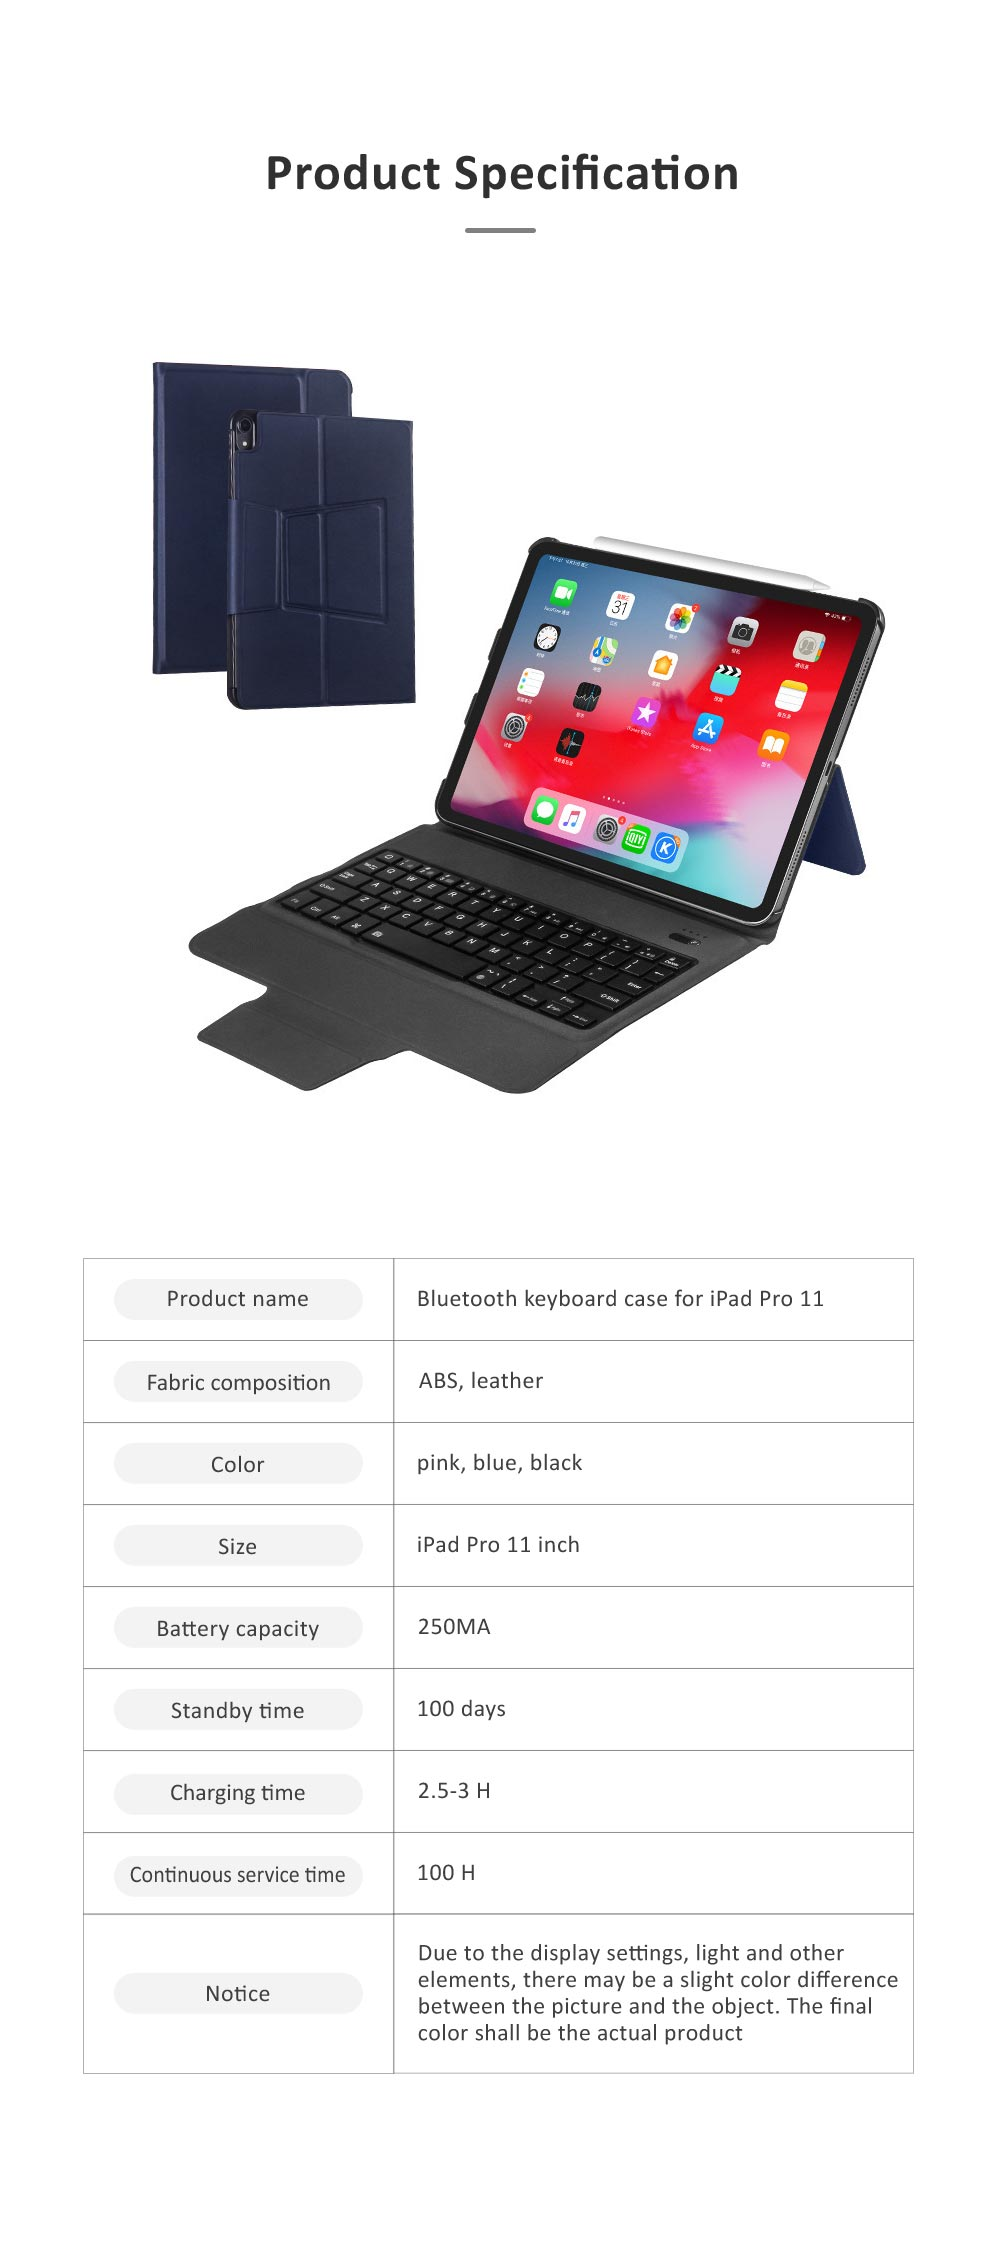 Ultra Thin Bluetooth Keyboard Case for iPad Pro 11 inches 2018, iPad Case with ABS Waterproof Keyboard for Apple iPad Pro 11 7